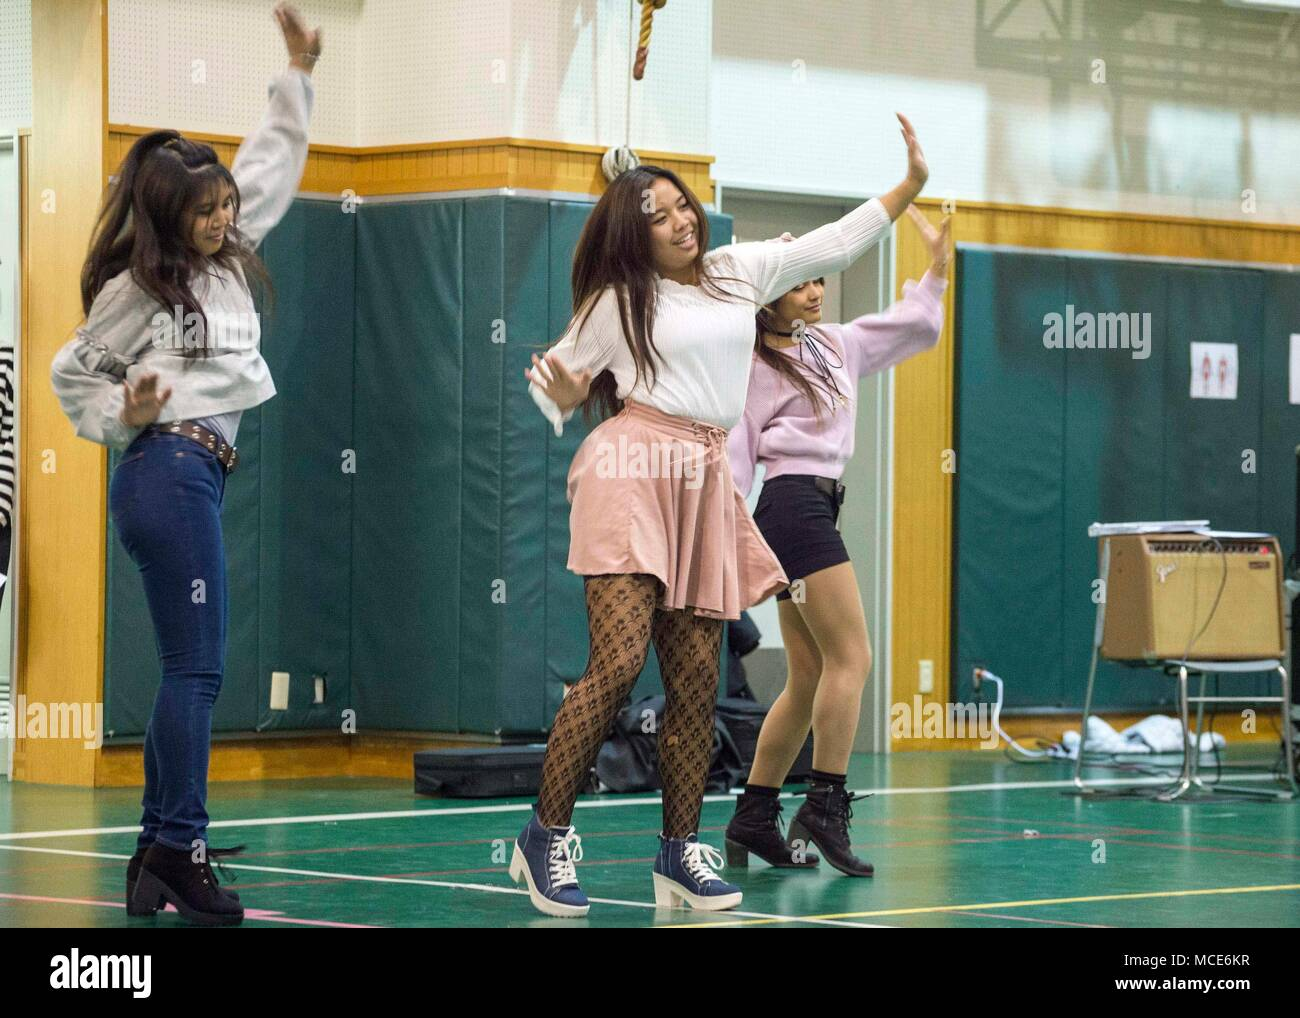 180223-N-LG762-164 YOKOSUKA, Japan (Feb. 23, 2018) K-Pop Dancers of Kinnick High preform during a Multicultural Night, Feb. 23.  The school's National Junior Honor Society (NJHS) hosted the unity-themed event which featured several performances from community members, local schools, and various performance groups. The student-led evening highlighted Dr. Martin Luther King's message of equality while celebrating Black History Month. (U.S. Navy photo by Mass Communication Specialist 2nd Class Zhiwei Tan/Released) Stock Photo